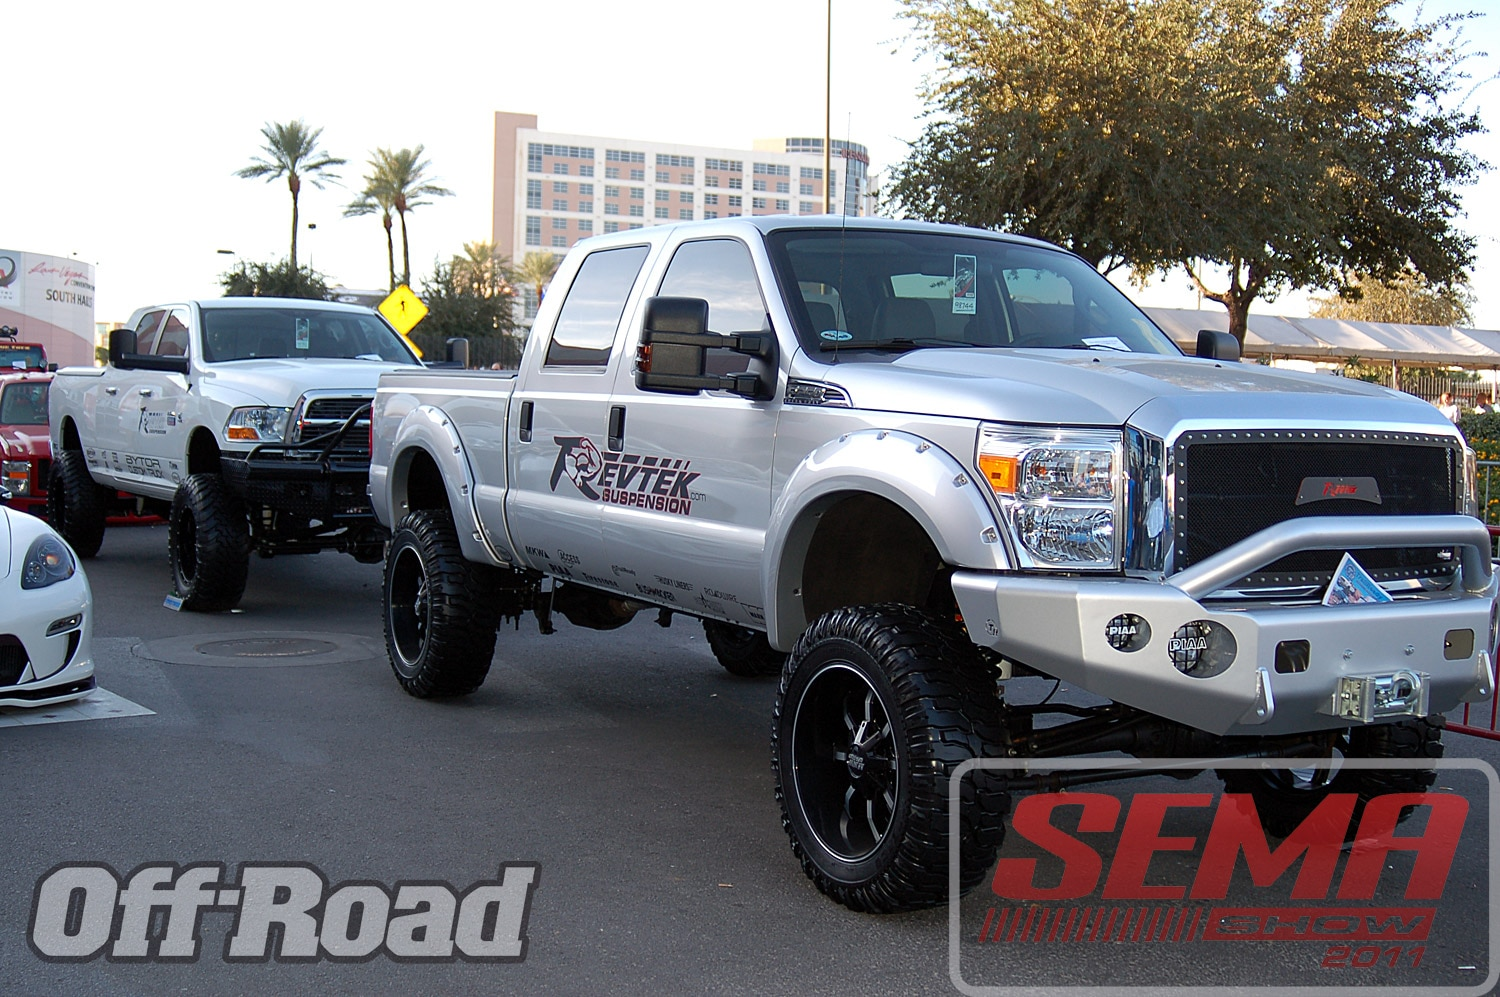 102312or 0124+2011 sema show+off road trucks and products